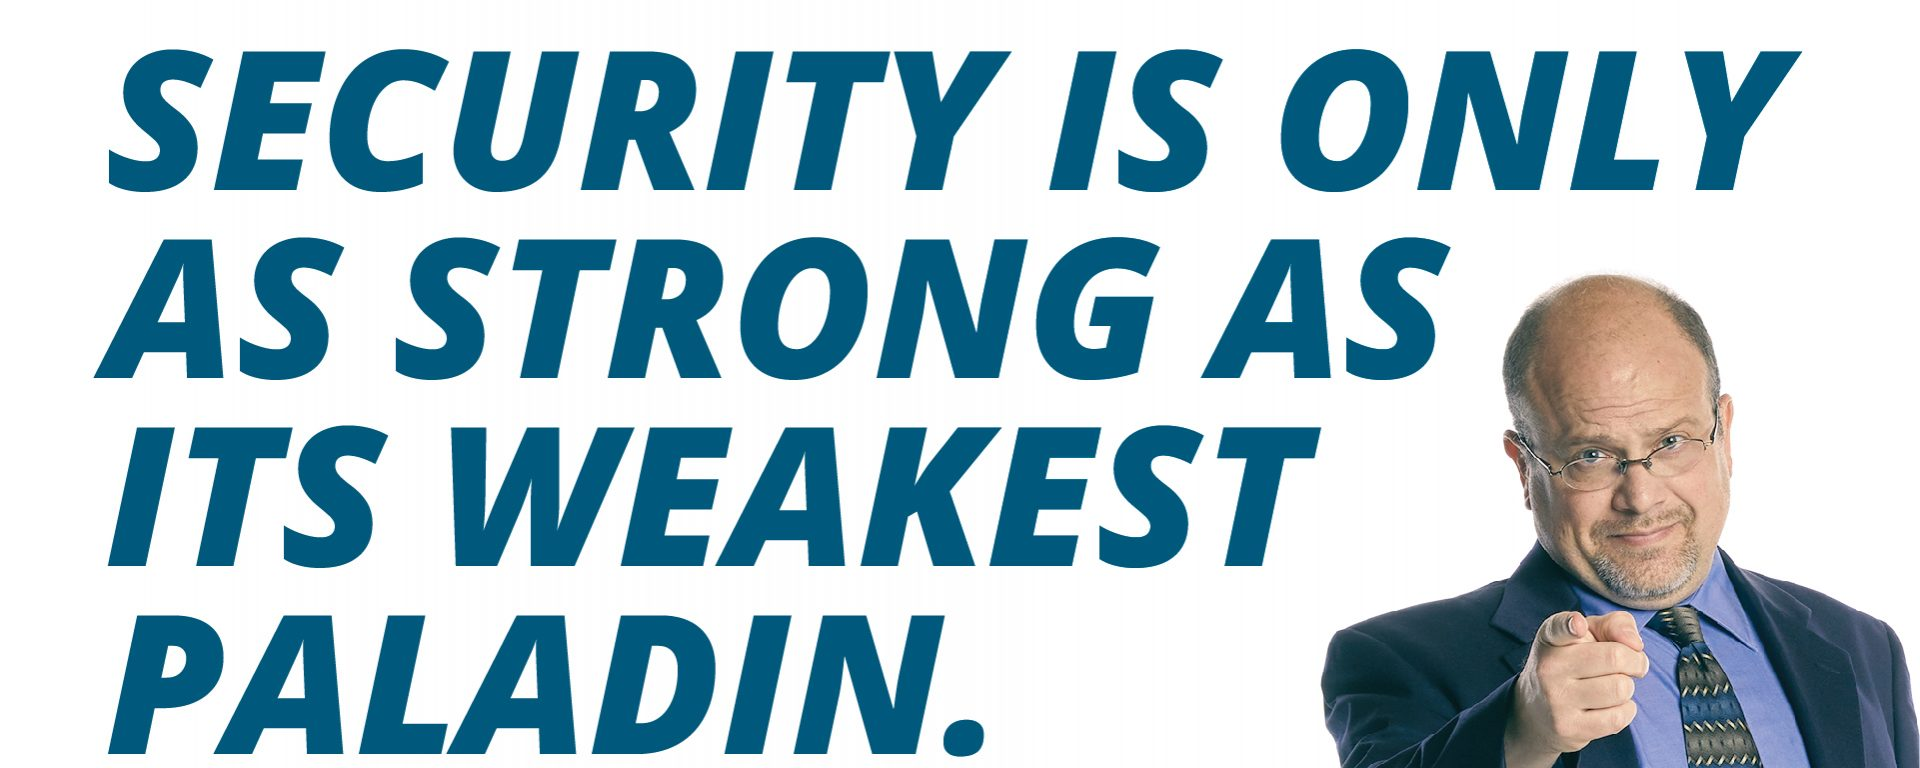 """Text in the image: """"Security is only as strong as its weakest paladin."""""""